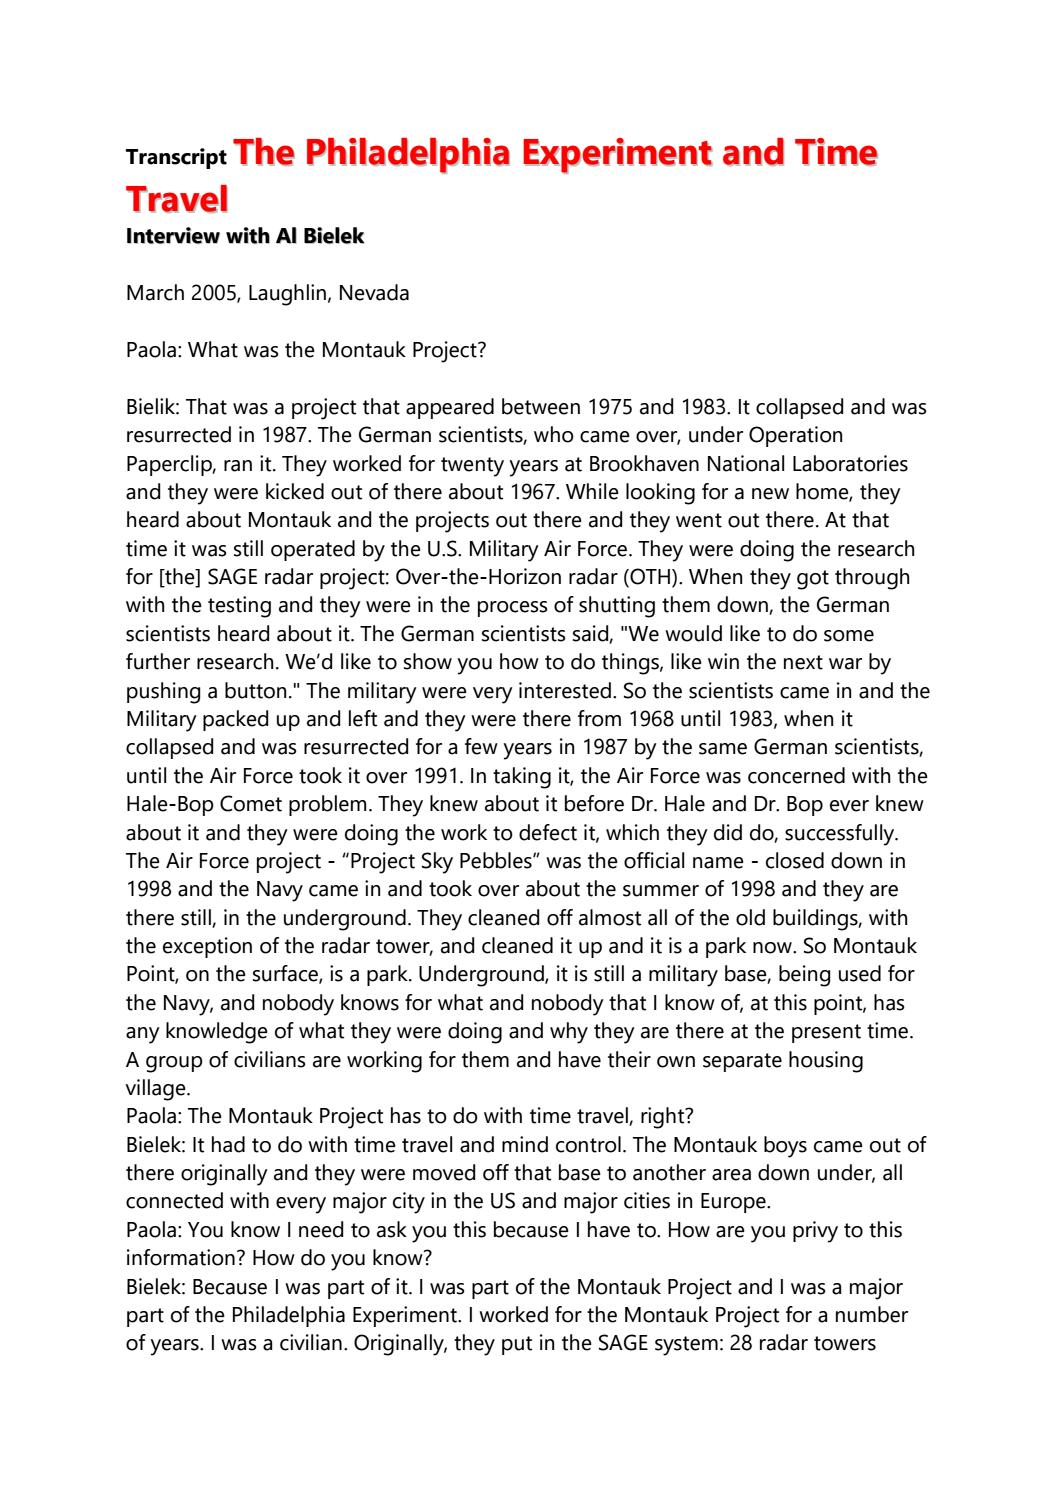 Transcript The Philadelphia Experiment And Time Travel By Frank Van Den Kommer Issuu Alxandro according to al bielek, the wingmakers are the super nerds of the 28th century. transcript the philadelphia experiment